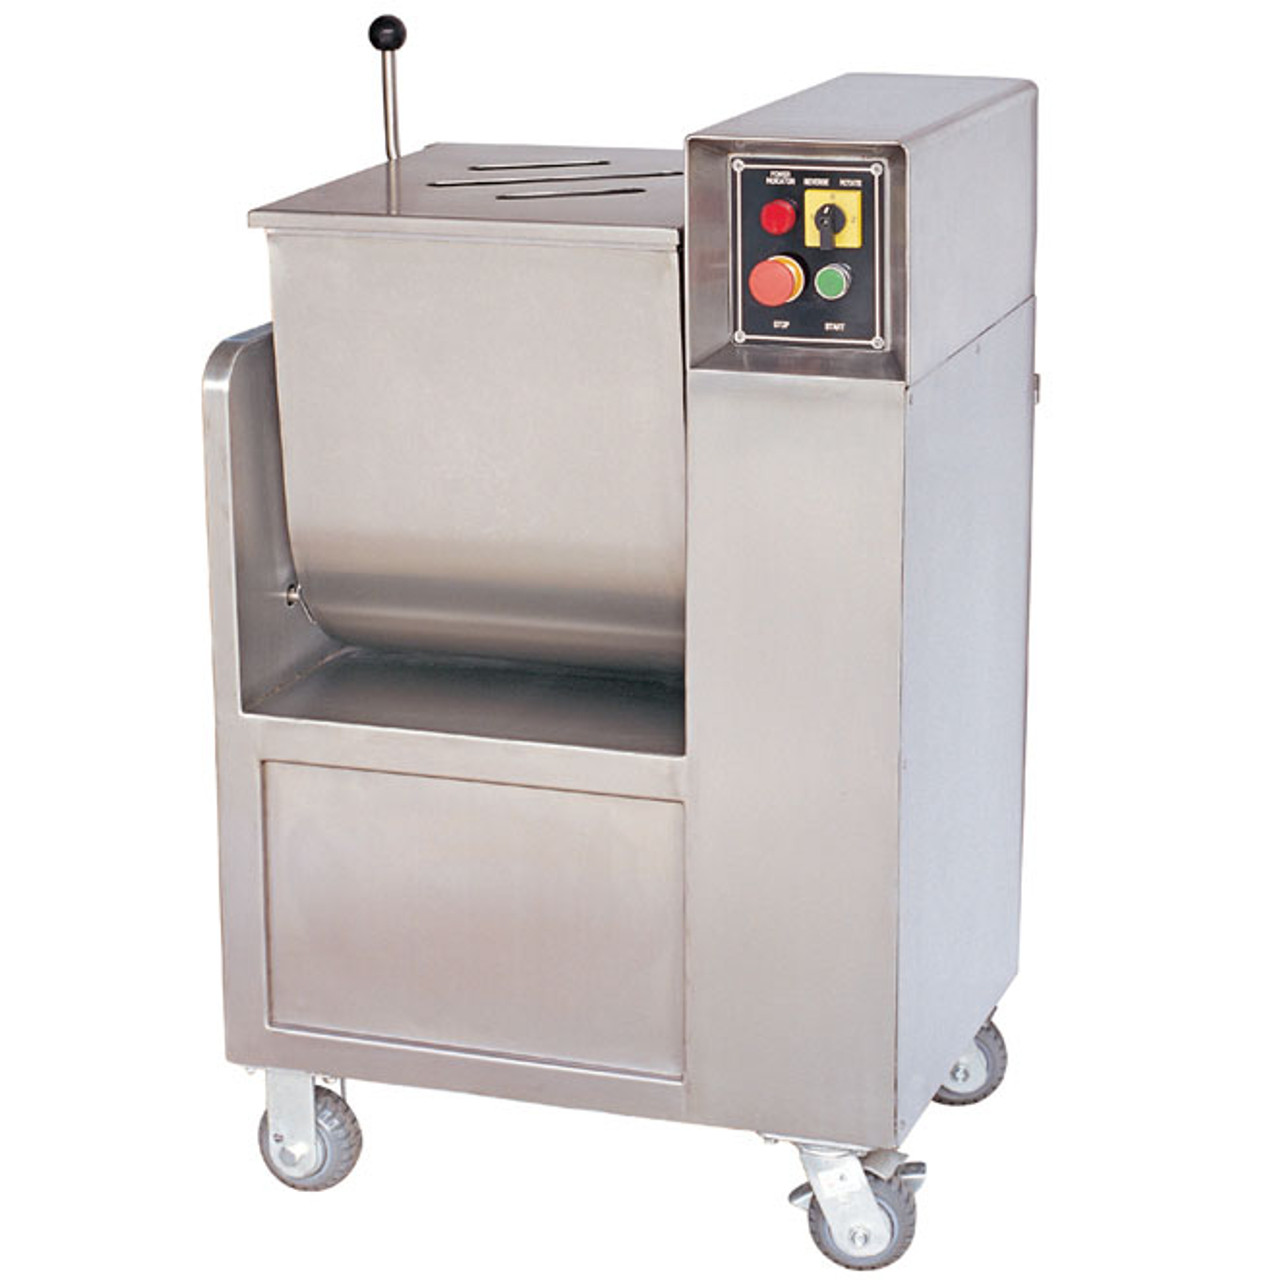 100lb. Home-Use Commercial Style Meat Mixer